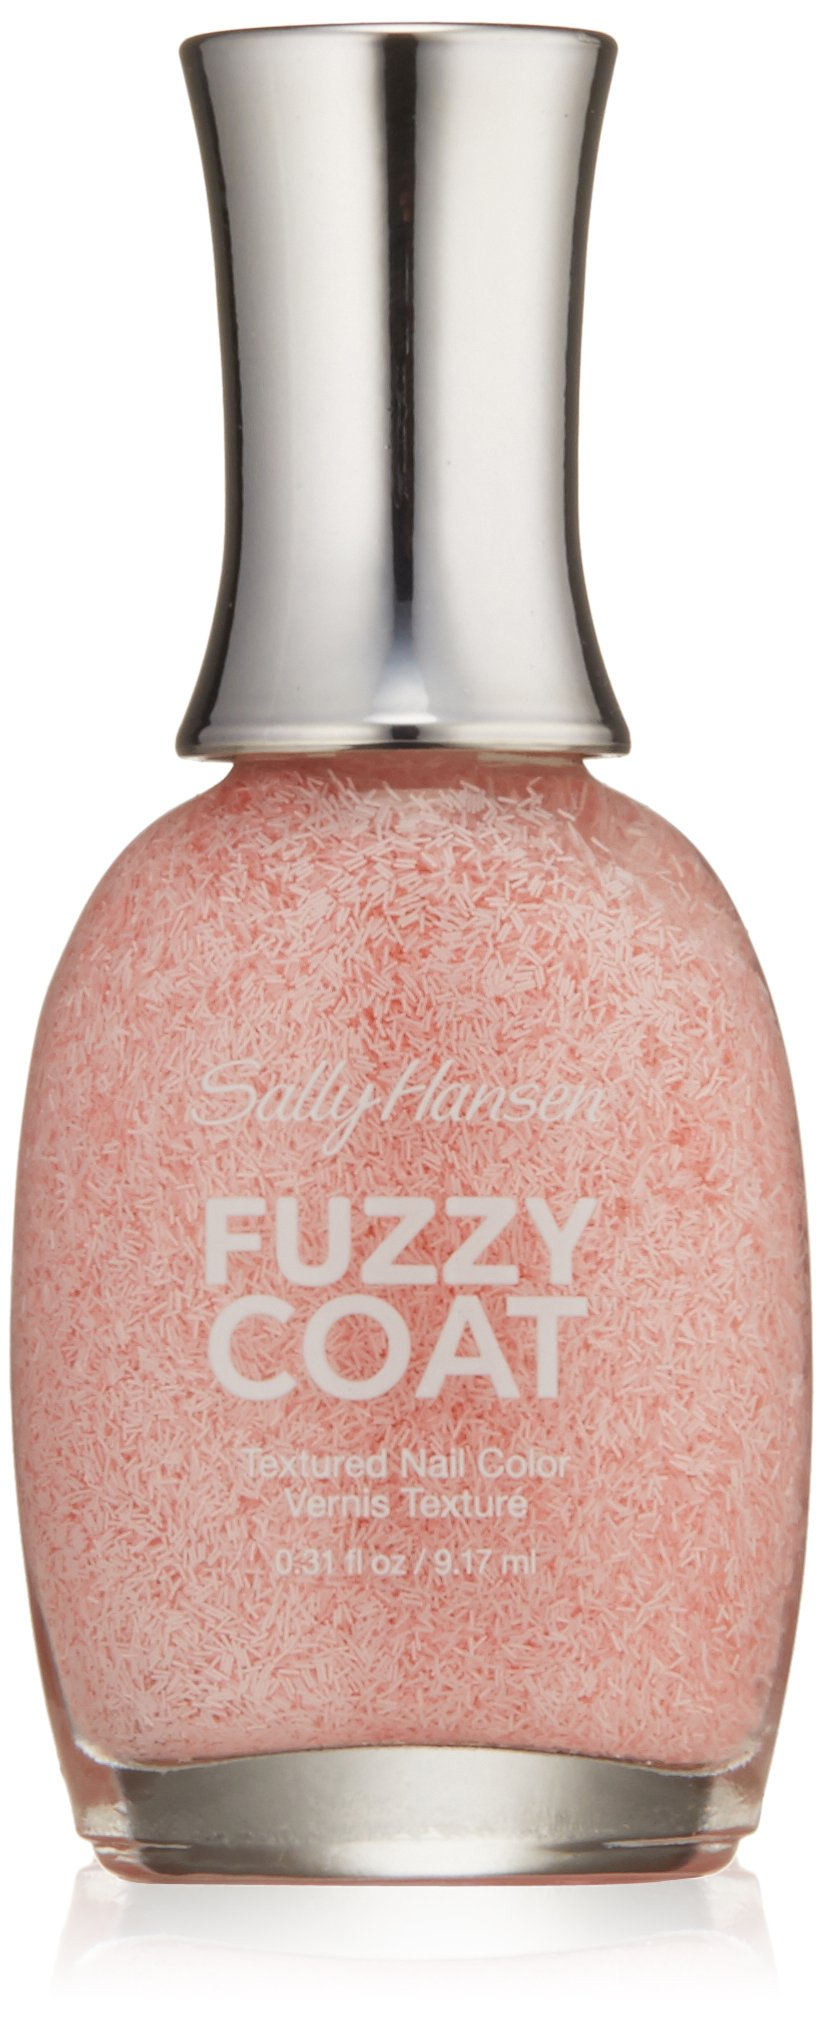 Amazon.com : Sally Hansen Fuzzy Coat Textured Nail Color 300 Peach ...